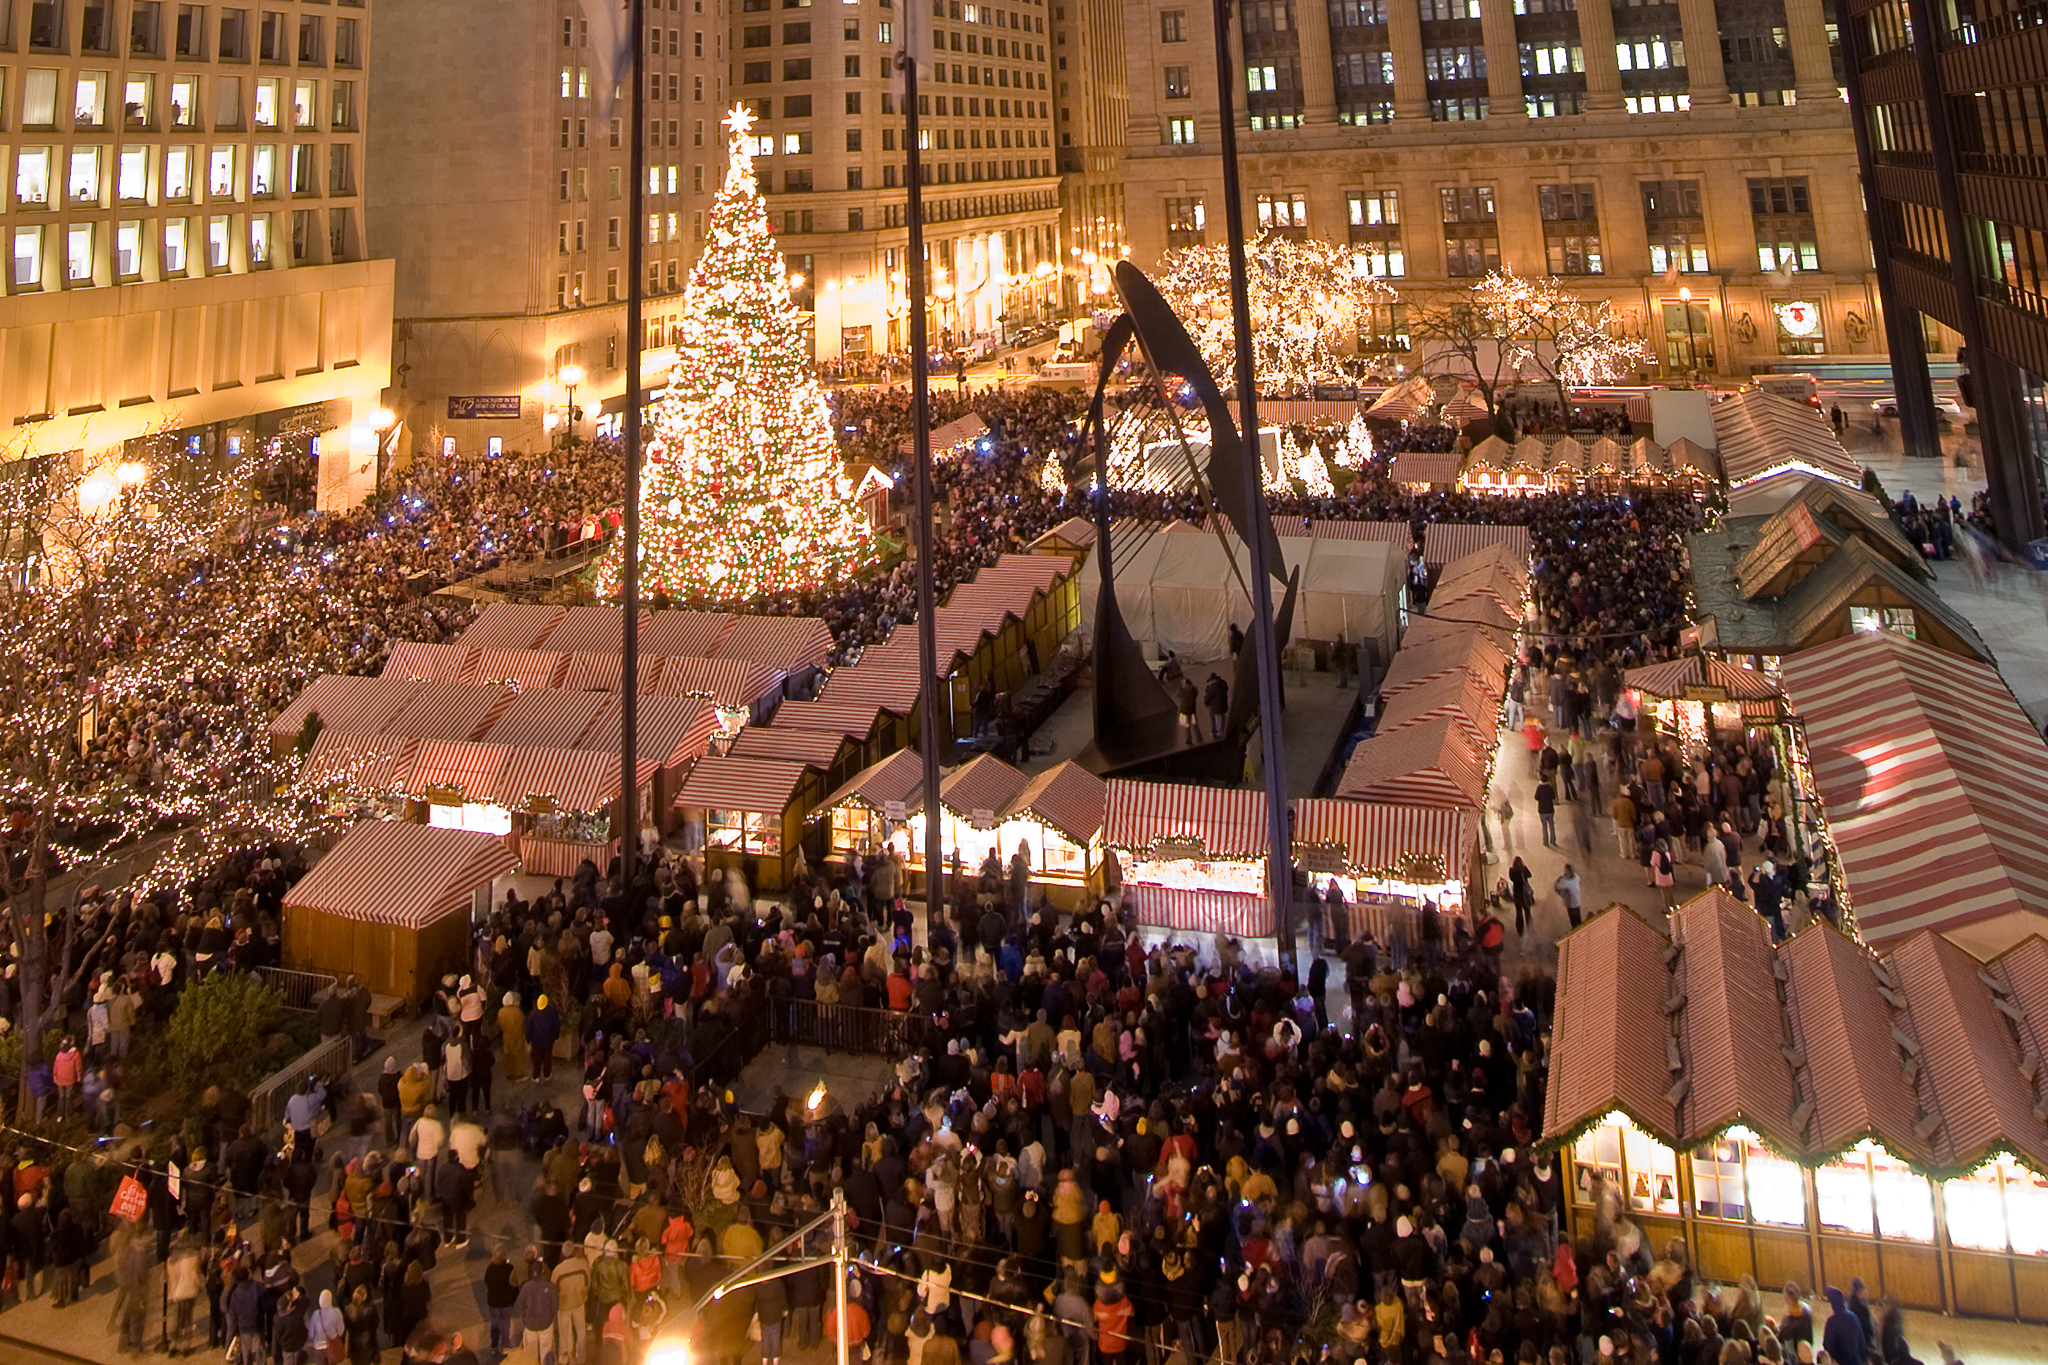 Only one month until Christkindlmarket opens